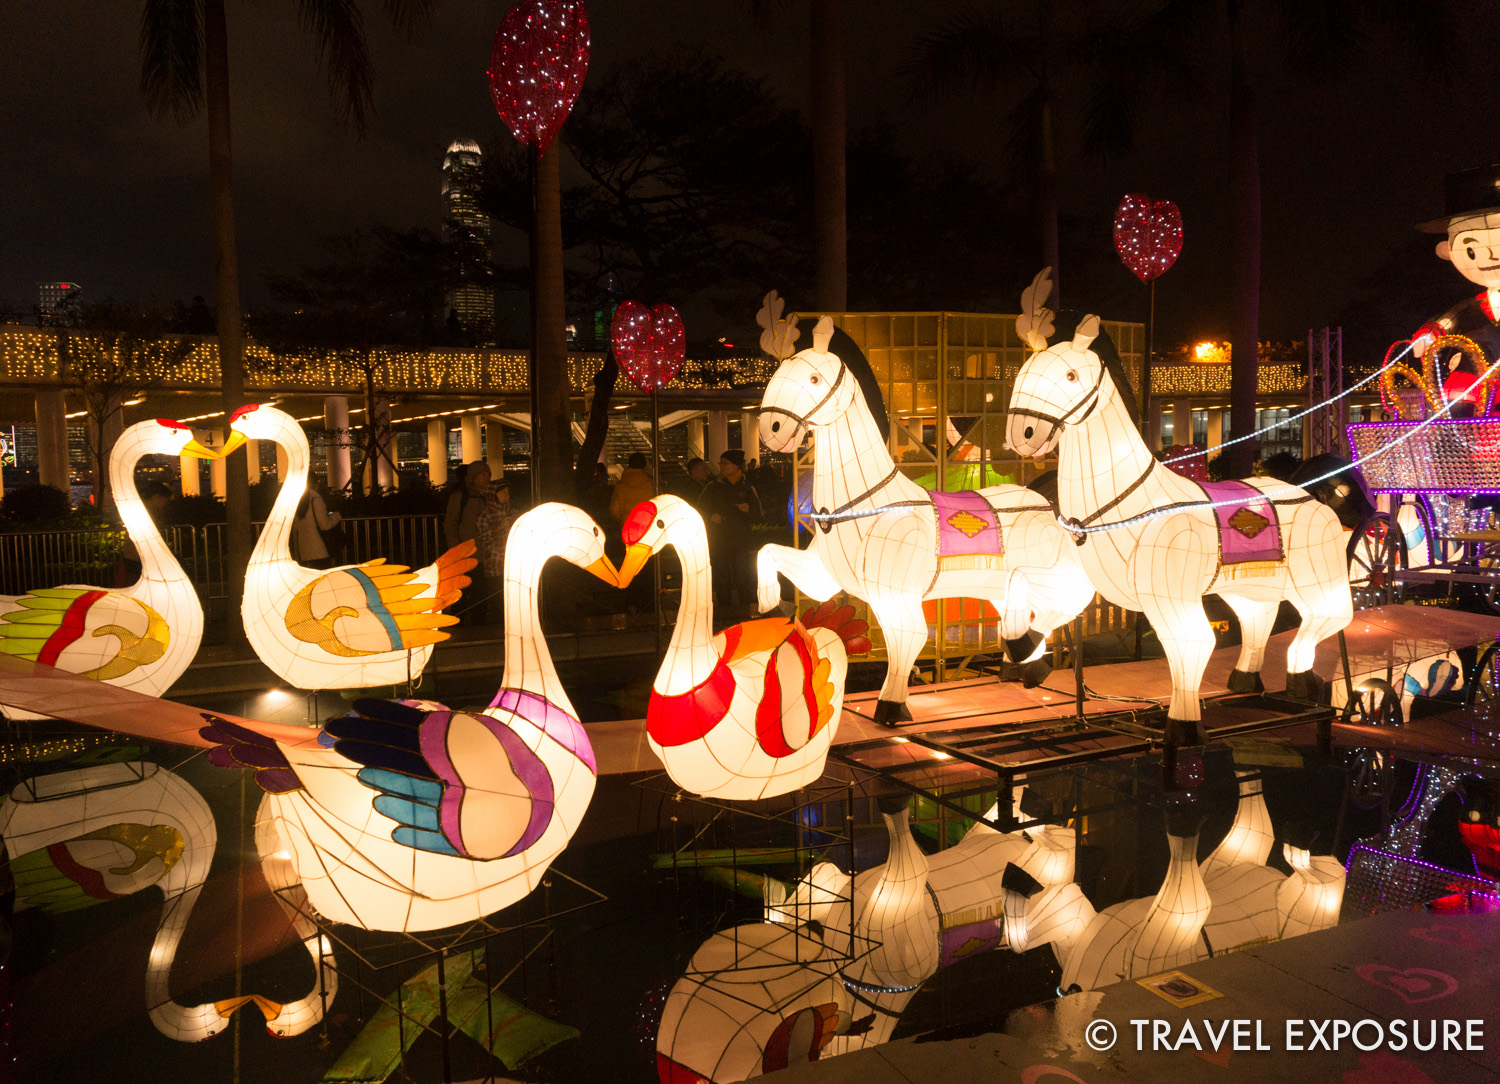 A cute love-themed lantern display as part of the Lantern Festival, marking the end of the Chinese New Year. This year it coincided with Valentine's Day.